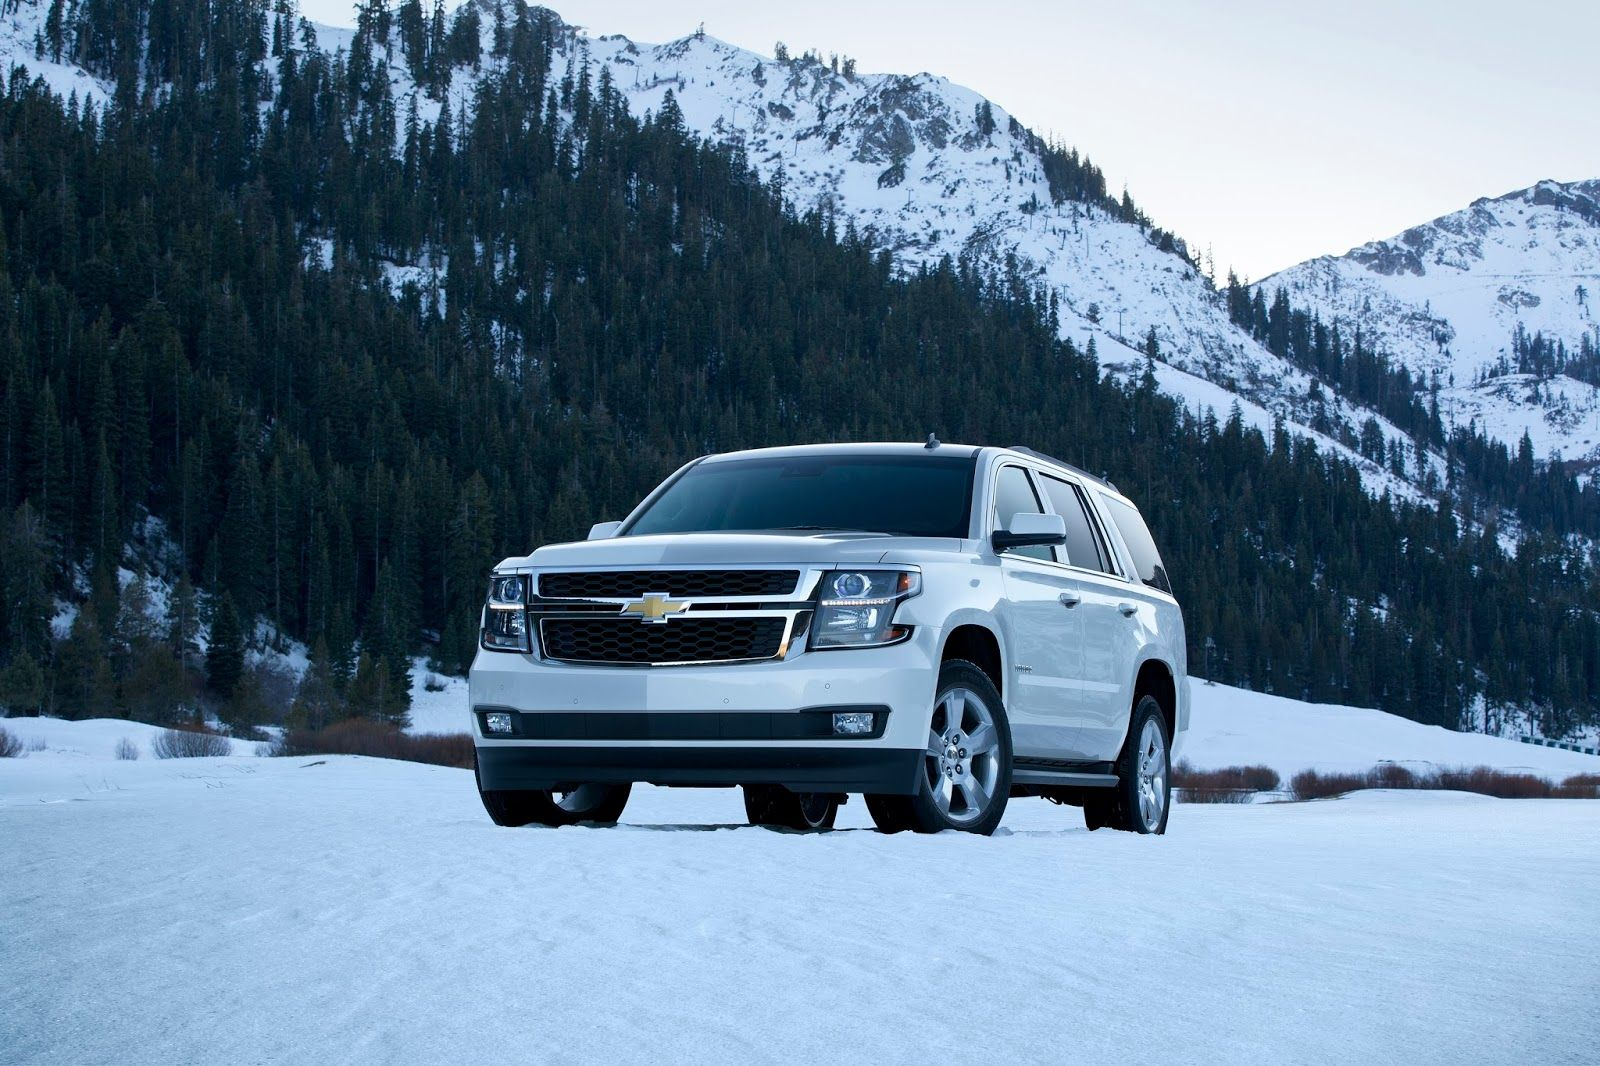 2015 Chevy Suvs Achieve Better Gas Mileage Chevrolet Tahoe